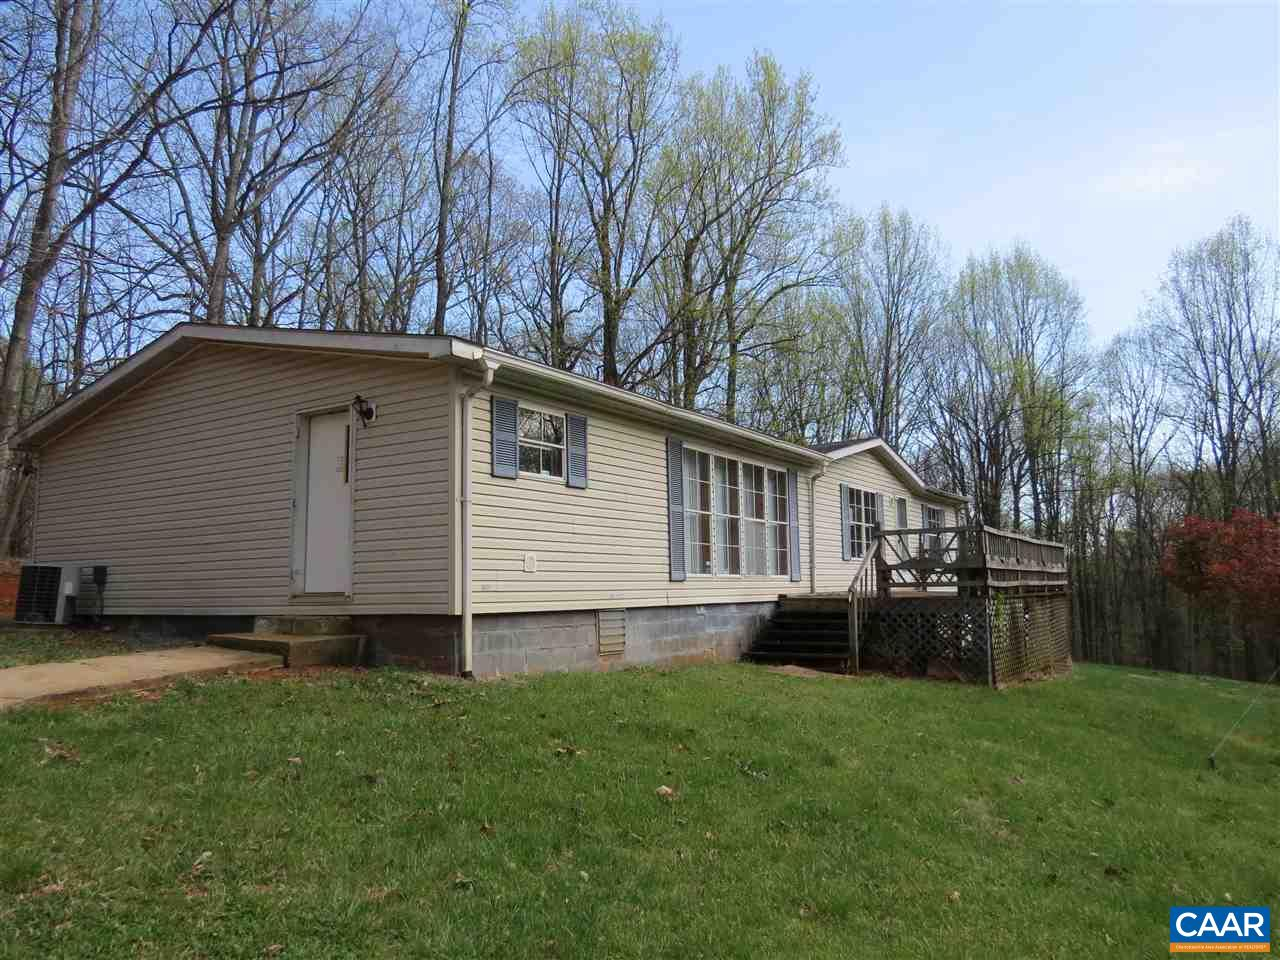 home for sale , MLS #576184, 18175 Carter Winkey Rd